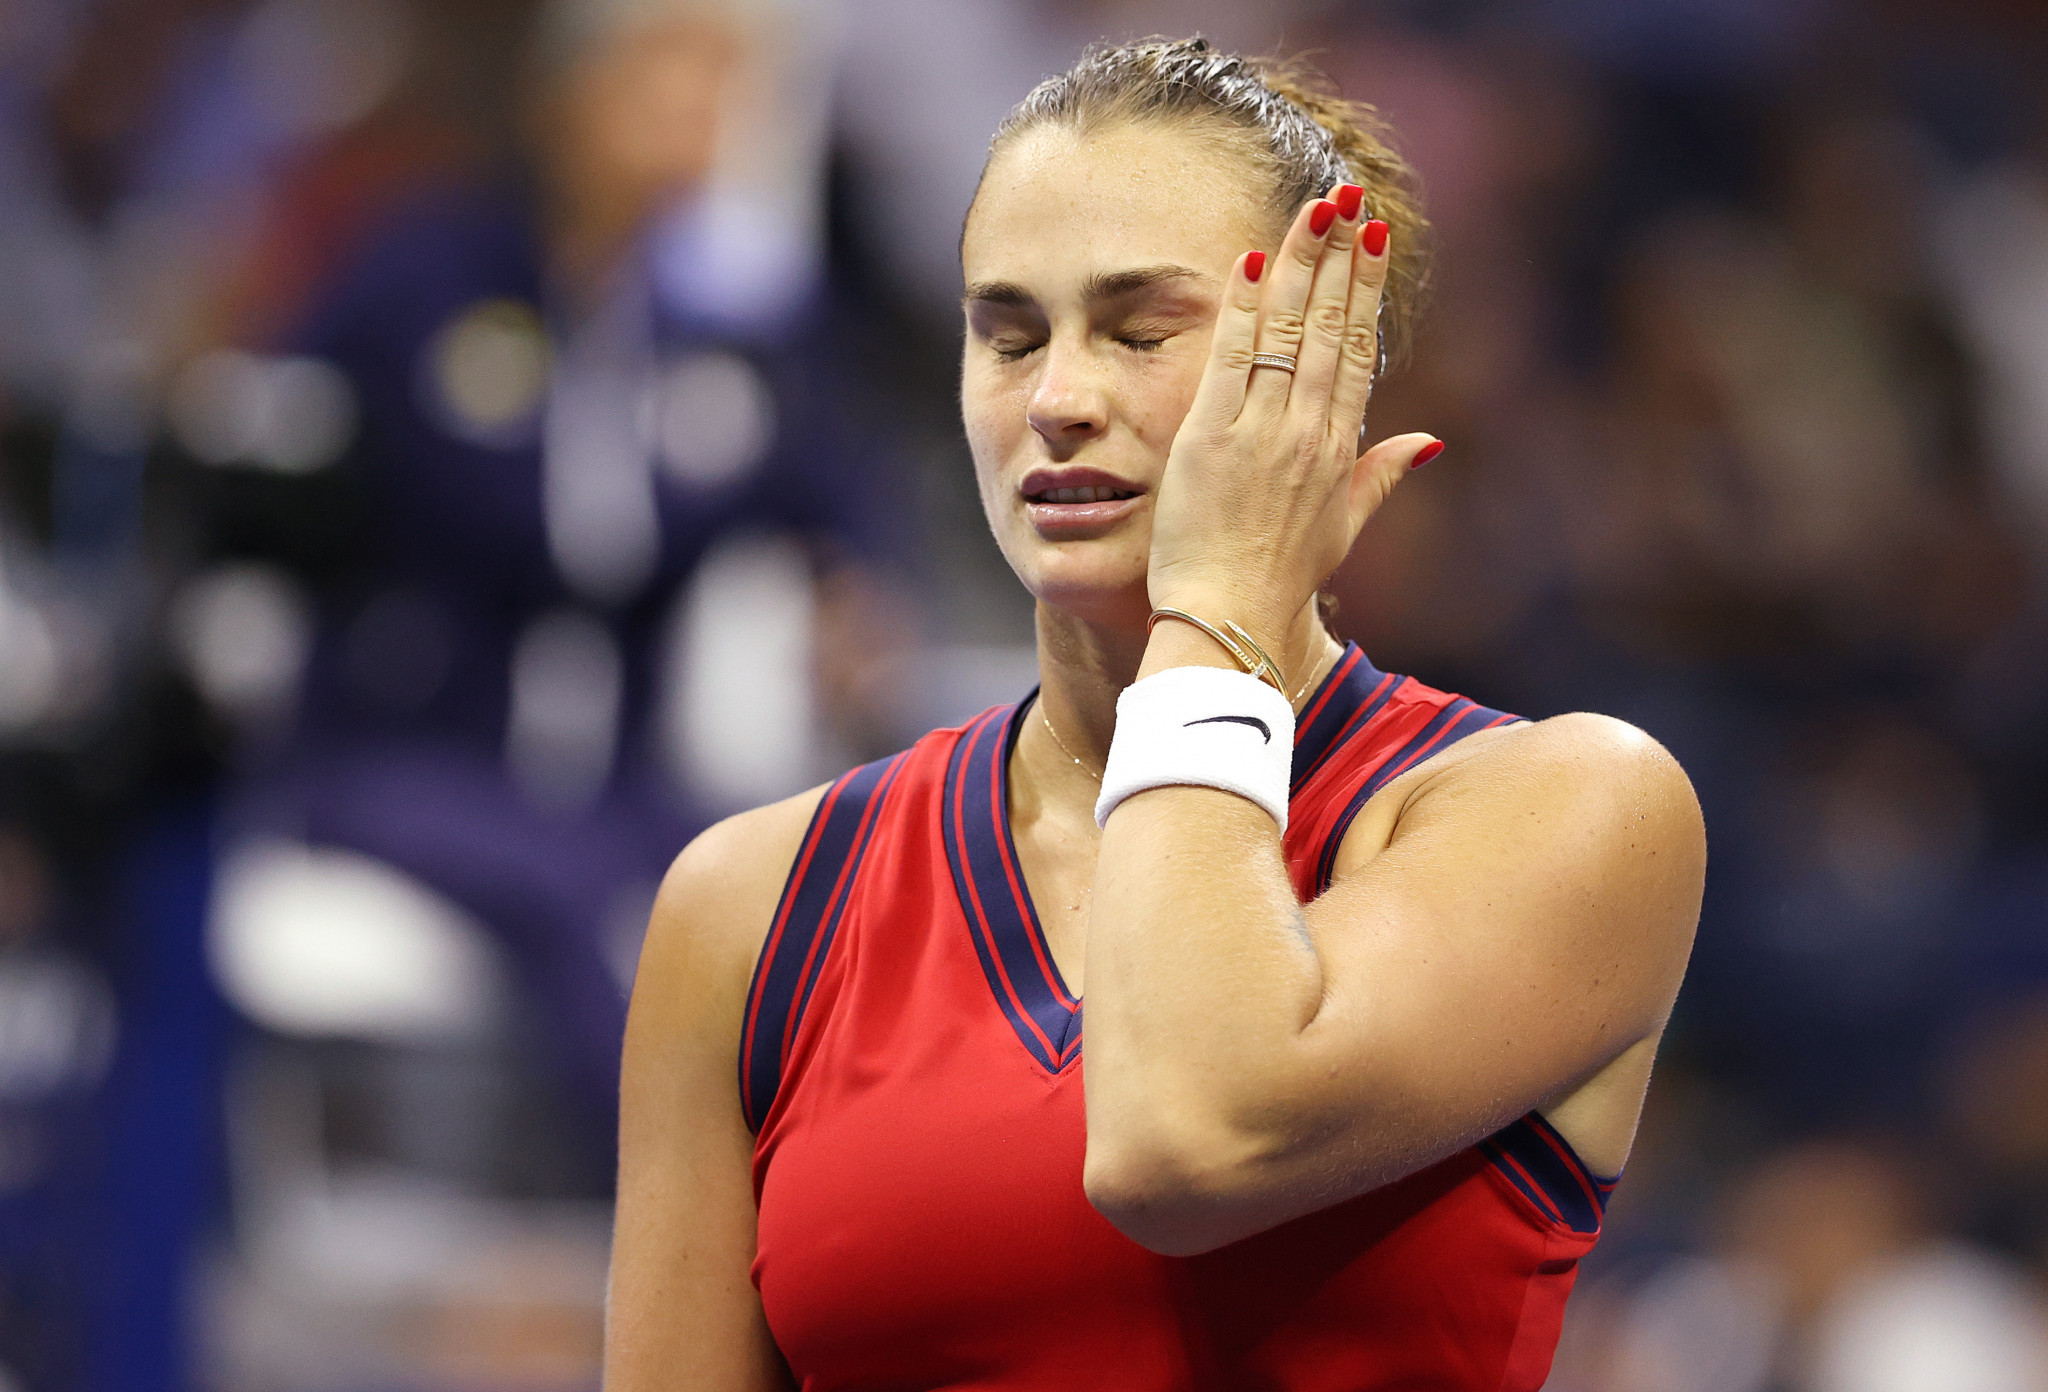 Sabalenka pulls out of Indian Wells Masters after testing positive for COVID-19